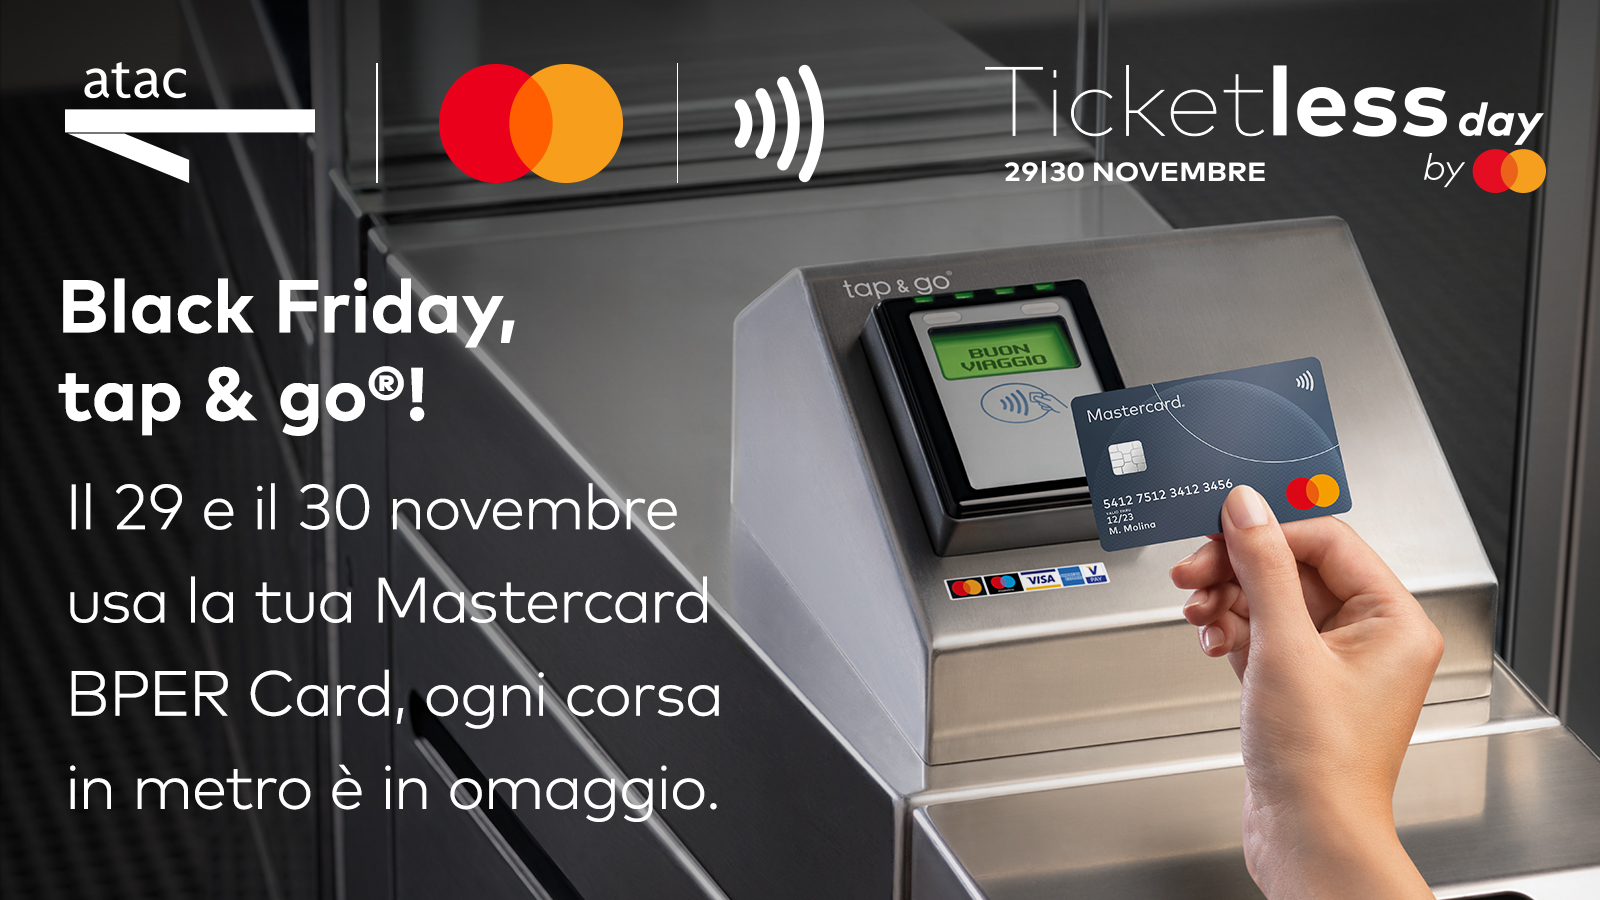 Mastercard ticketless day